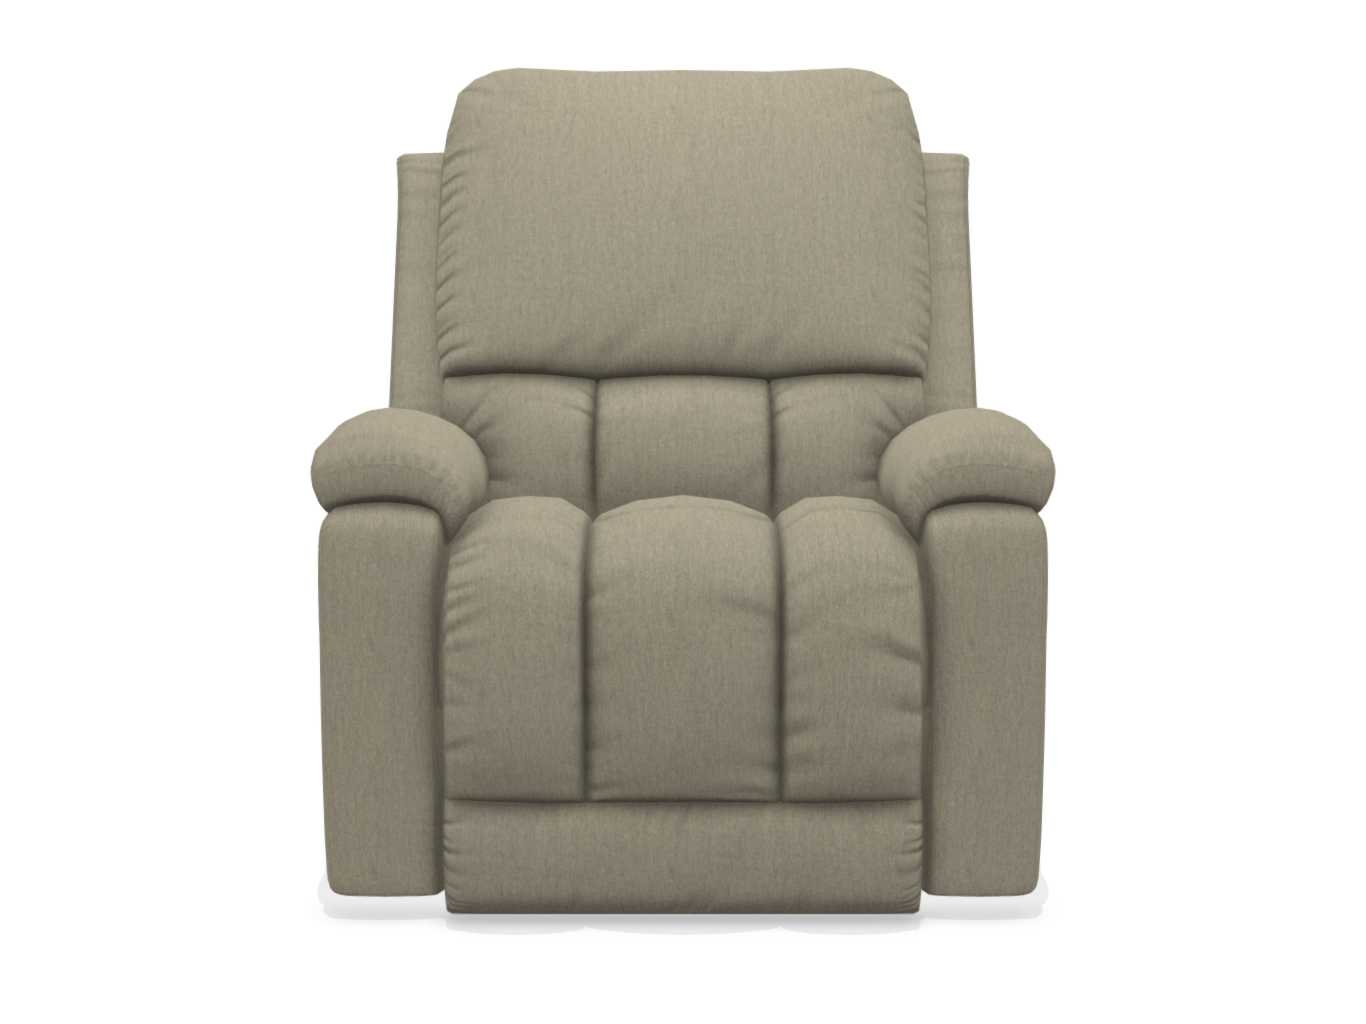 La-Z-Boy Greyson Power Rocking Recliner review